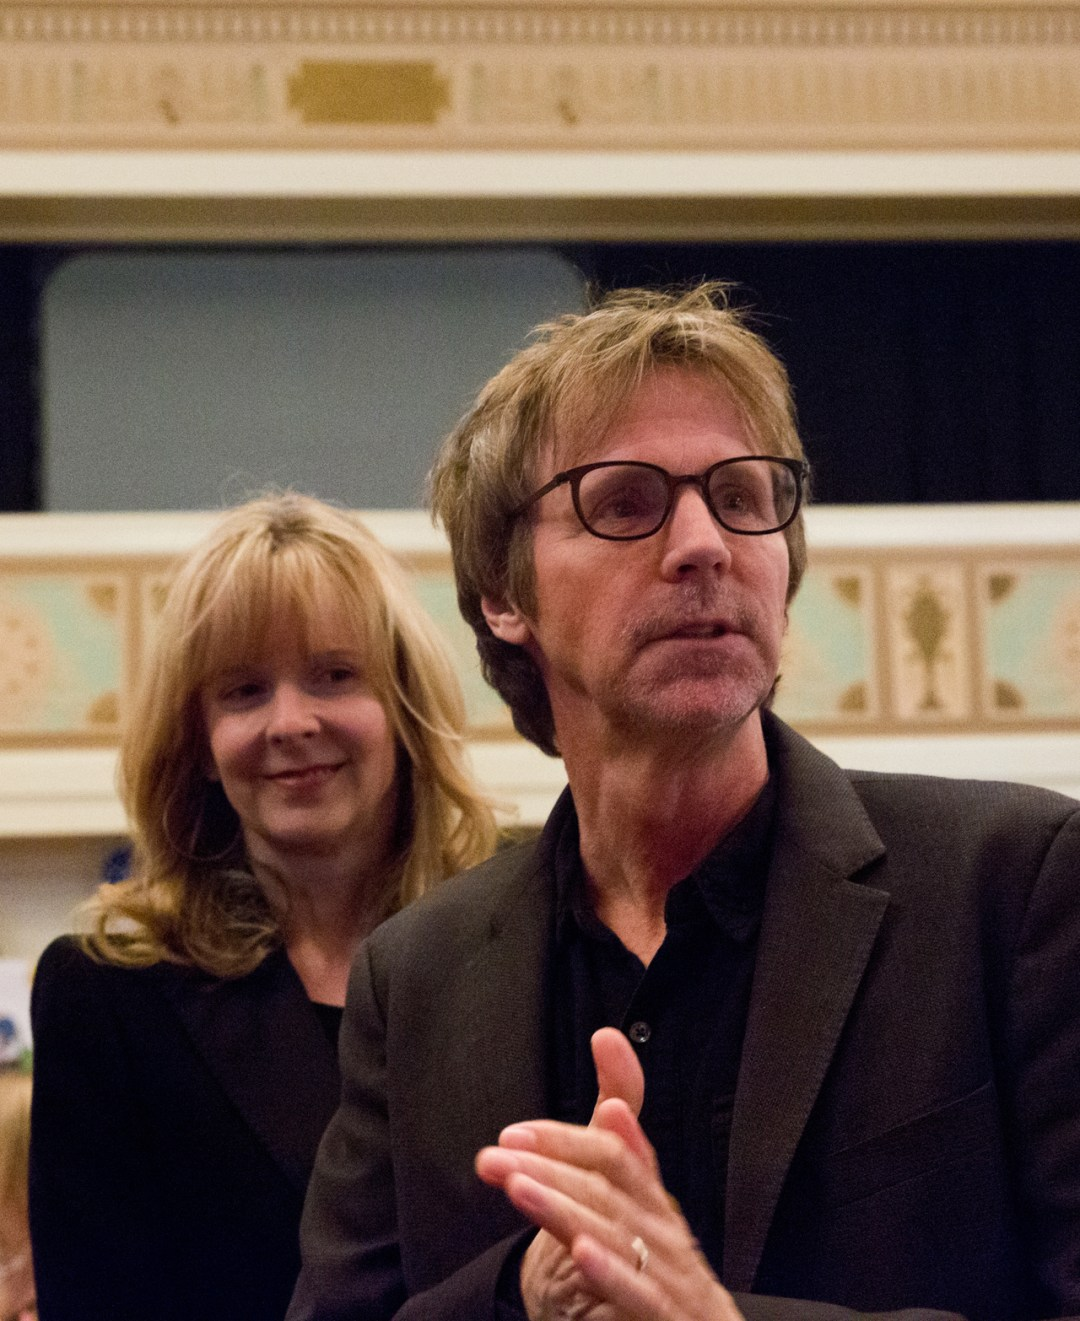 Dana Carvey and his wife at fundraiser